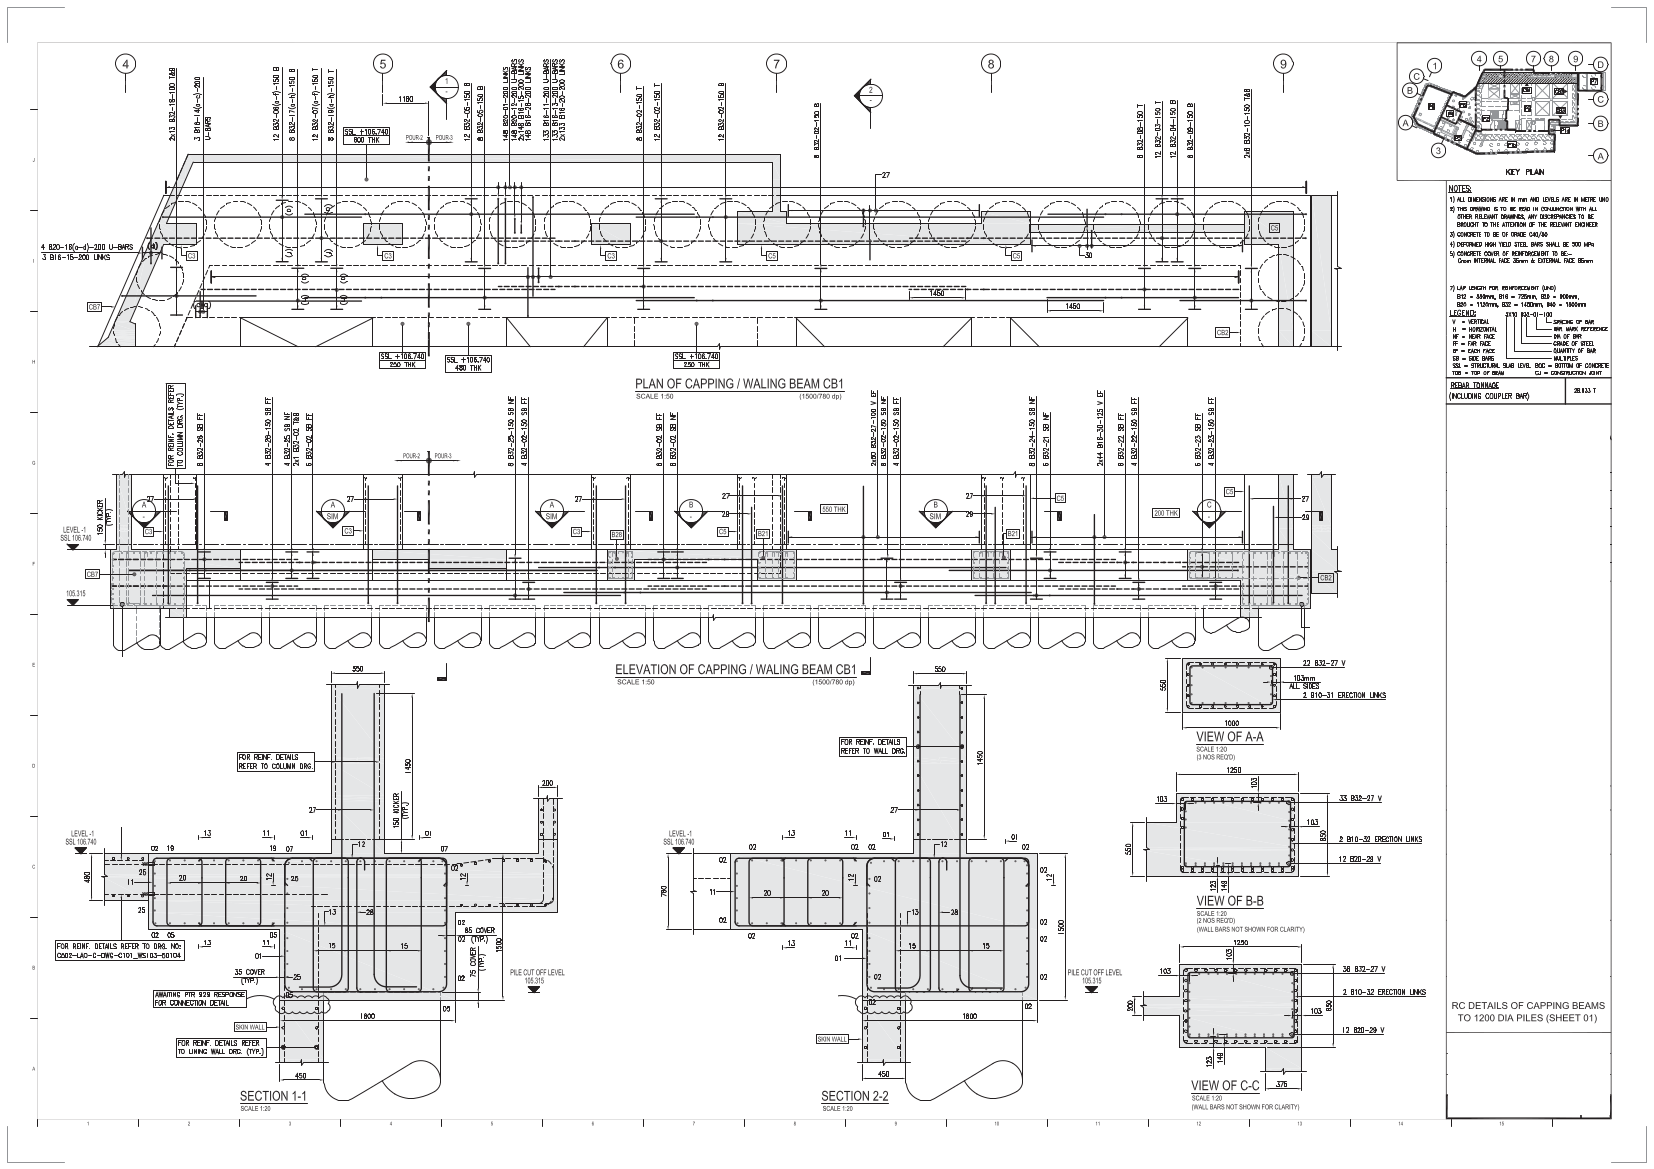 Cads Rc Sample Drawings Bar Bending Schedules Uk Wall Schematic Engineering Diagram Railways Capping Beam